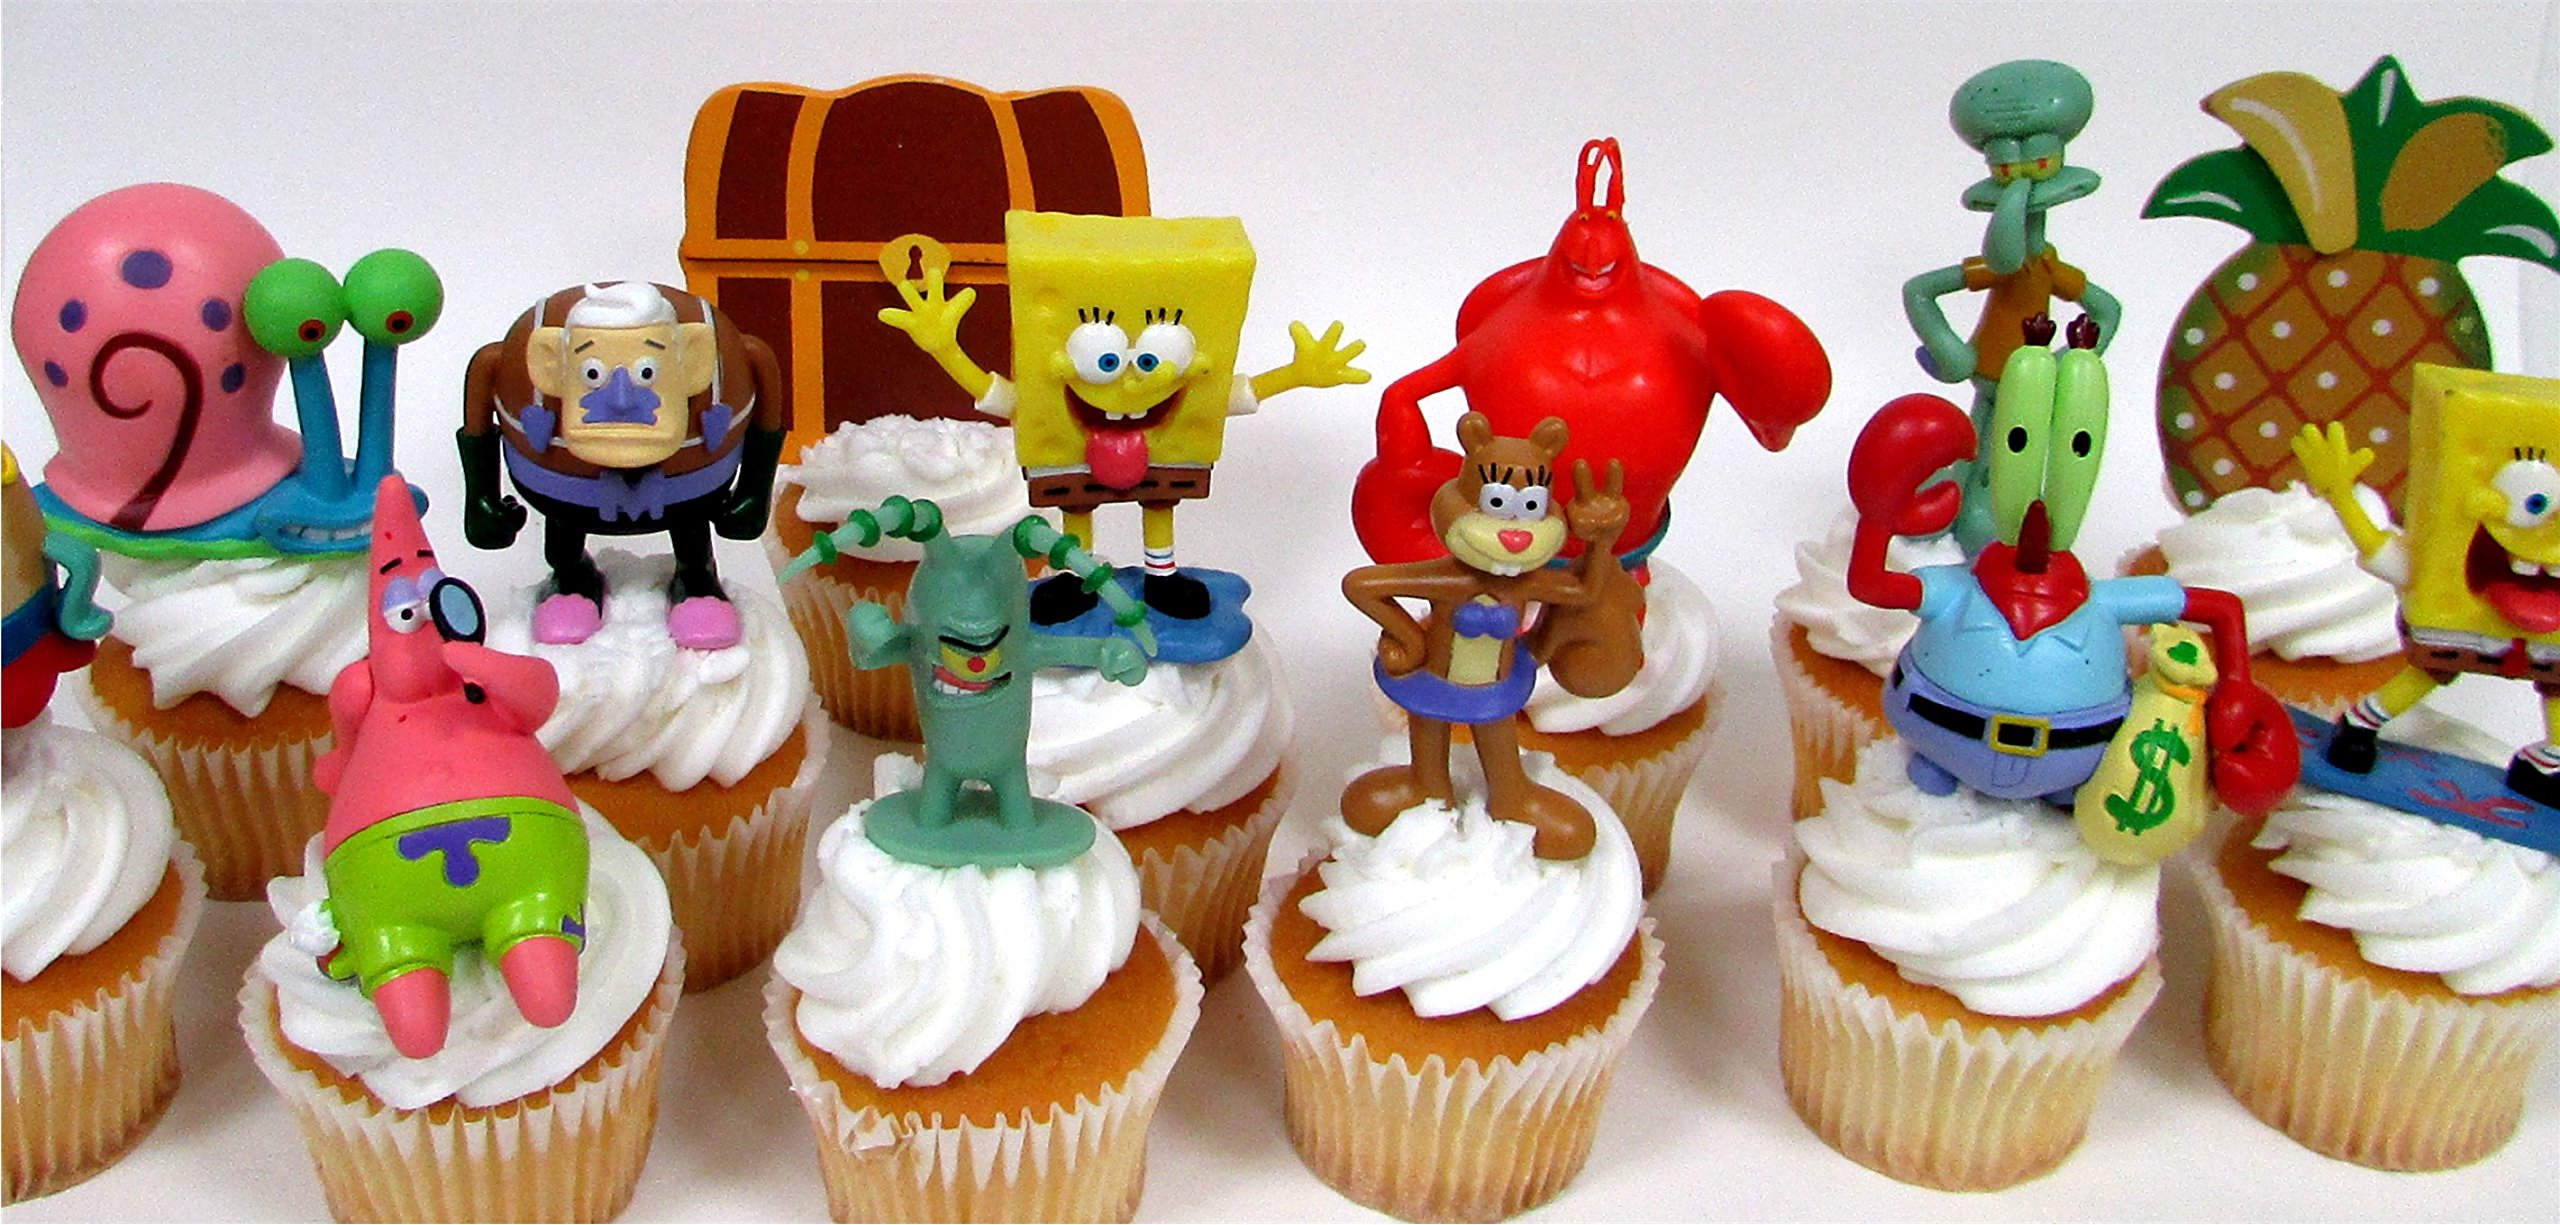 SPONGEBOB SQUAREPANTS 12 Piece CUPCAKE Topper Set Featuring 10 Random SpongeBob Figures and Themed Decorative Accessories, Figures Average 2'' to 3'' Inches Tall